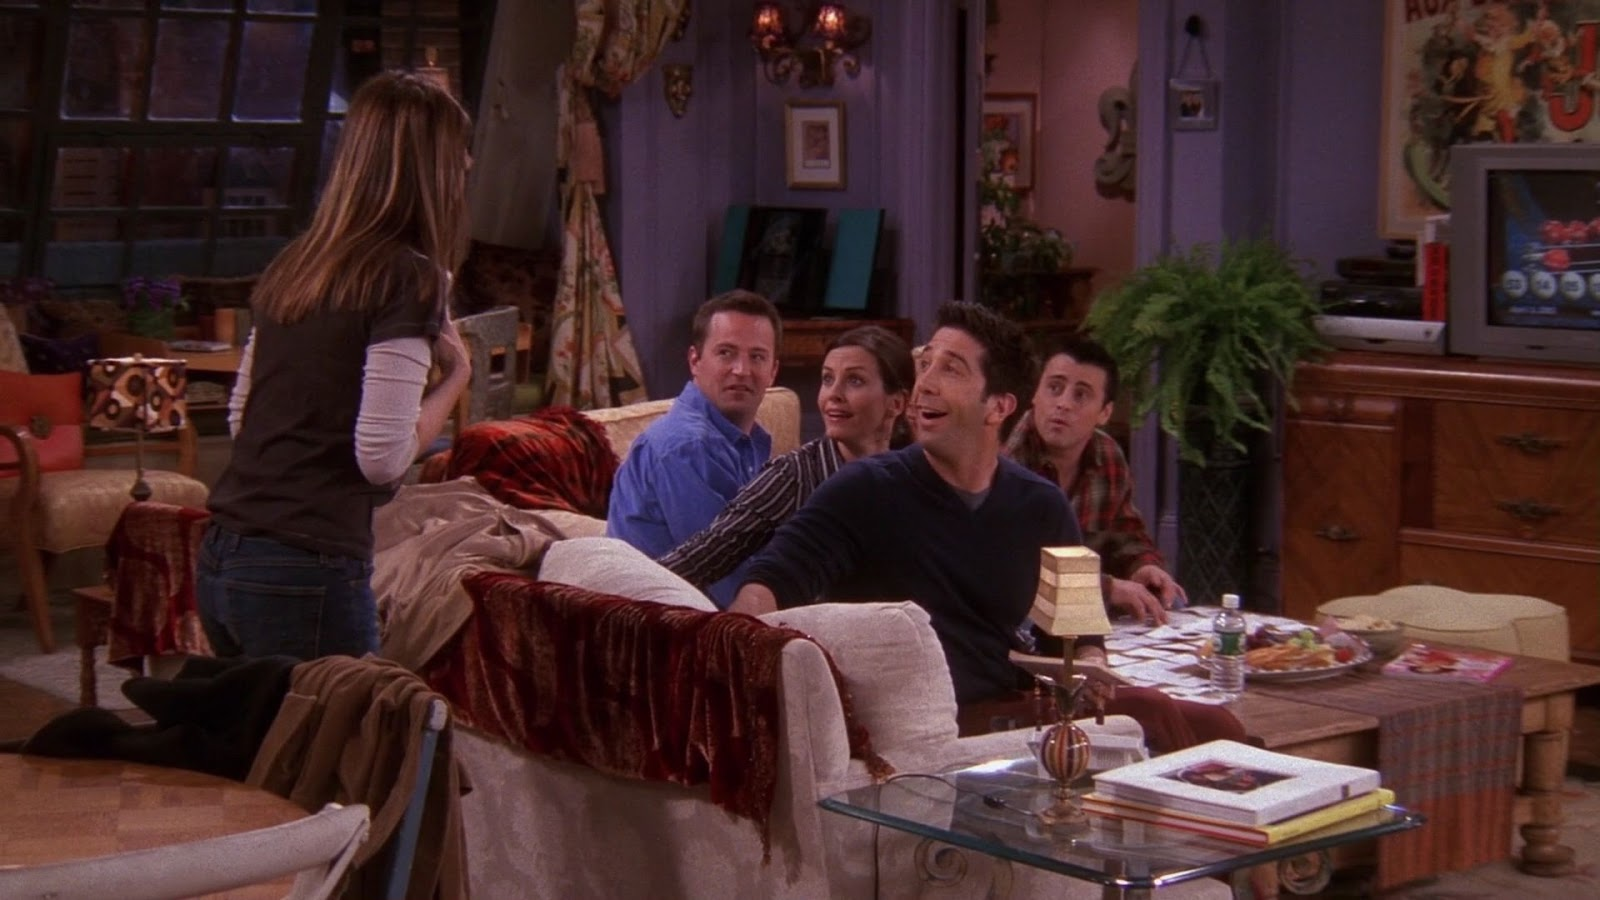 We could all learn a little from Monica Gellar's iconic nineties interior style in her apartment on Friends - how to recreate the timeless eclectic interior design look cheaply and easily within your home